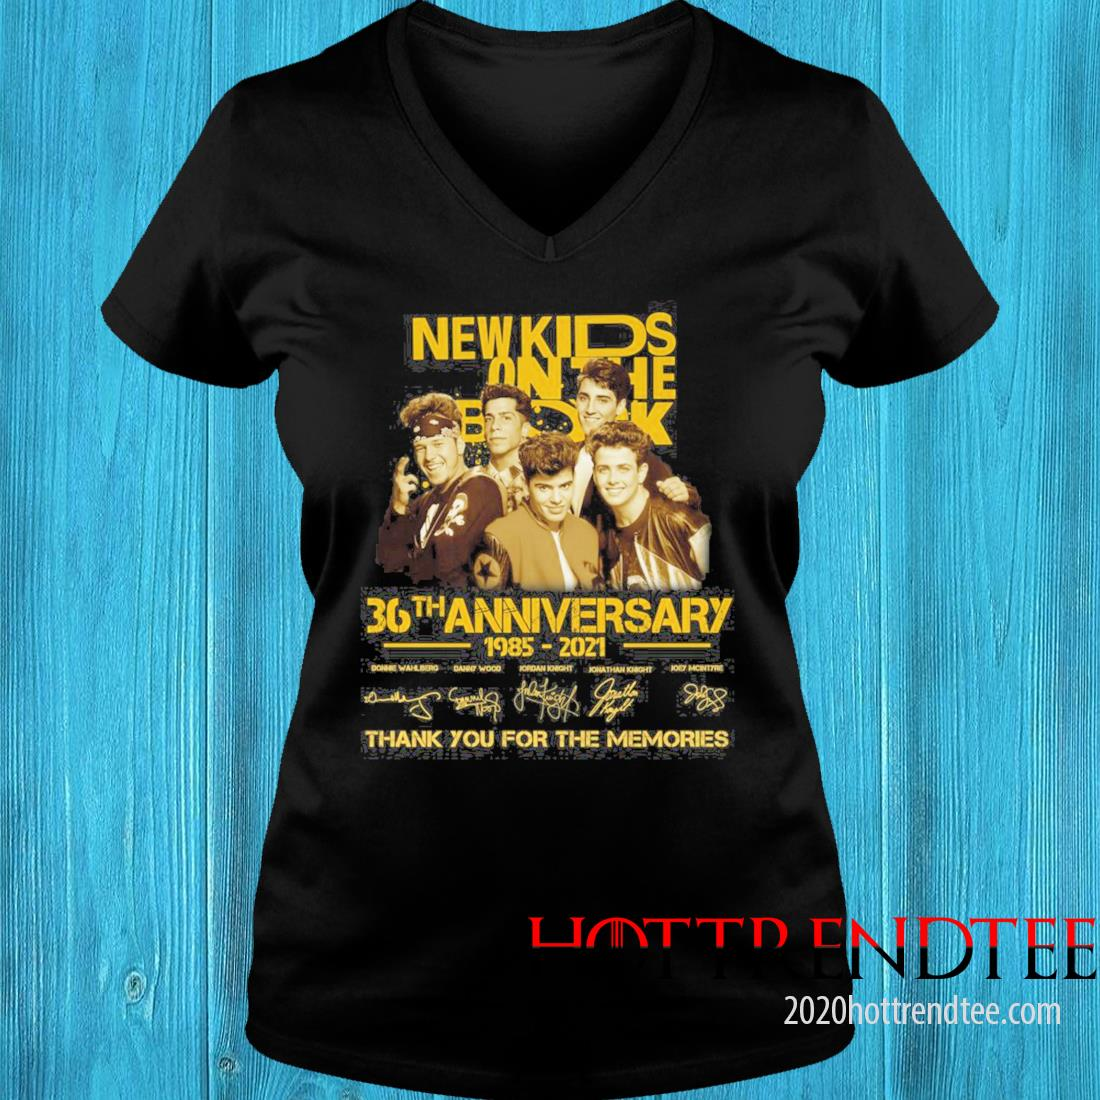 New Kids On The Block 36th Anniversary 1985 2021 Signatures Thank You For The Memories Shirt v-neck tee